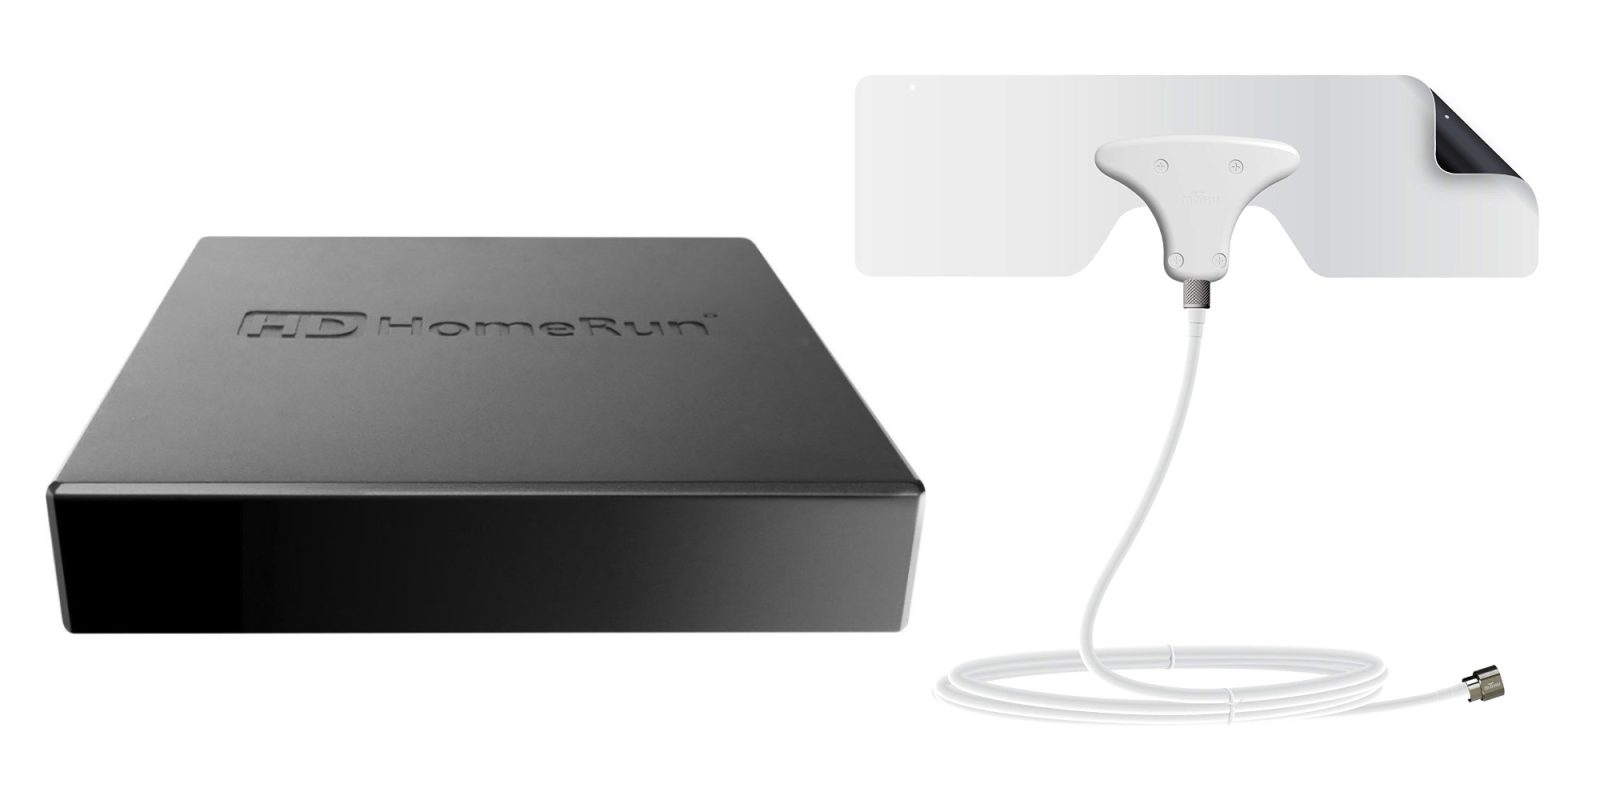 Watch live TV on your iPhone with HDHomeRun's tuner at $100 (33% off), more